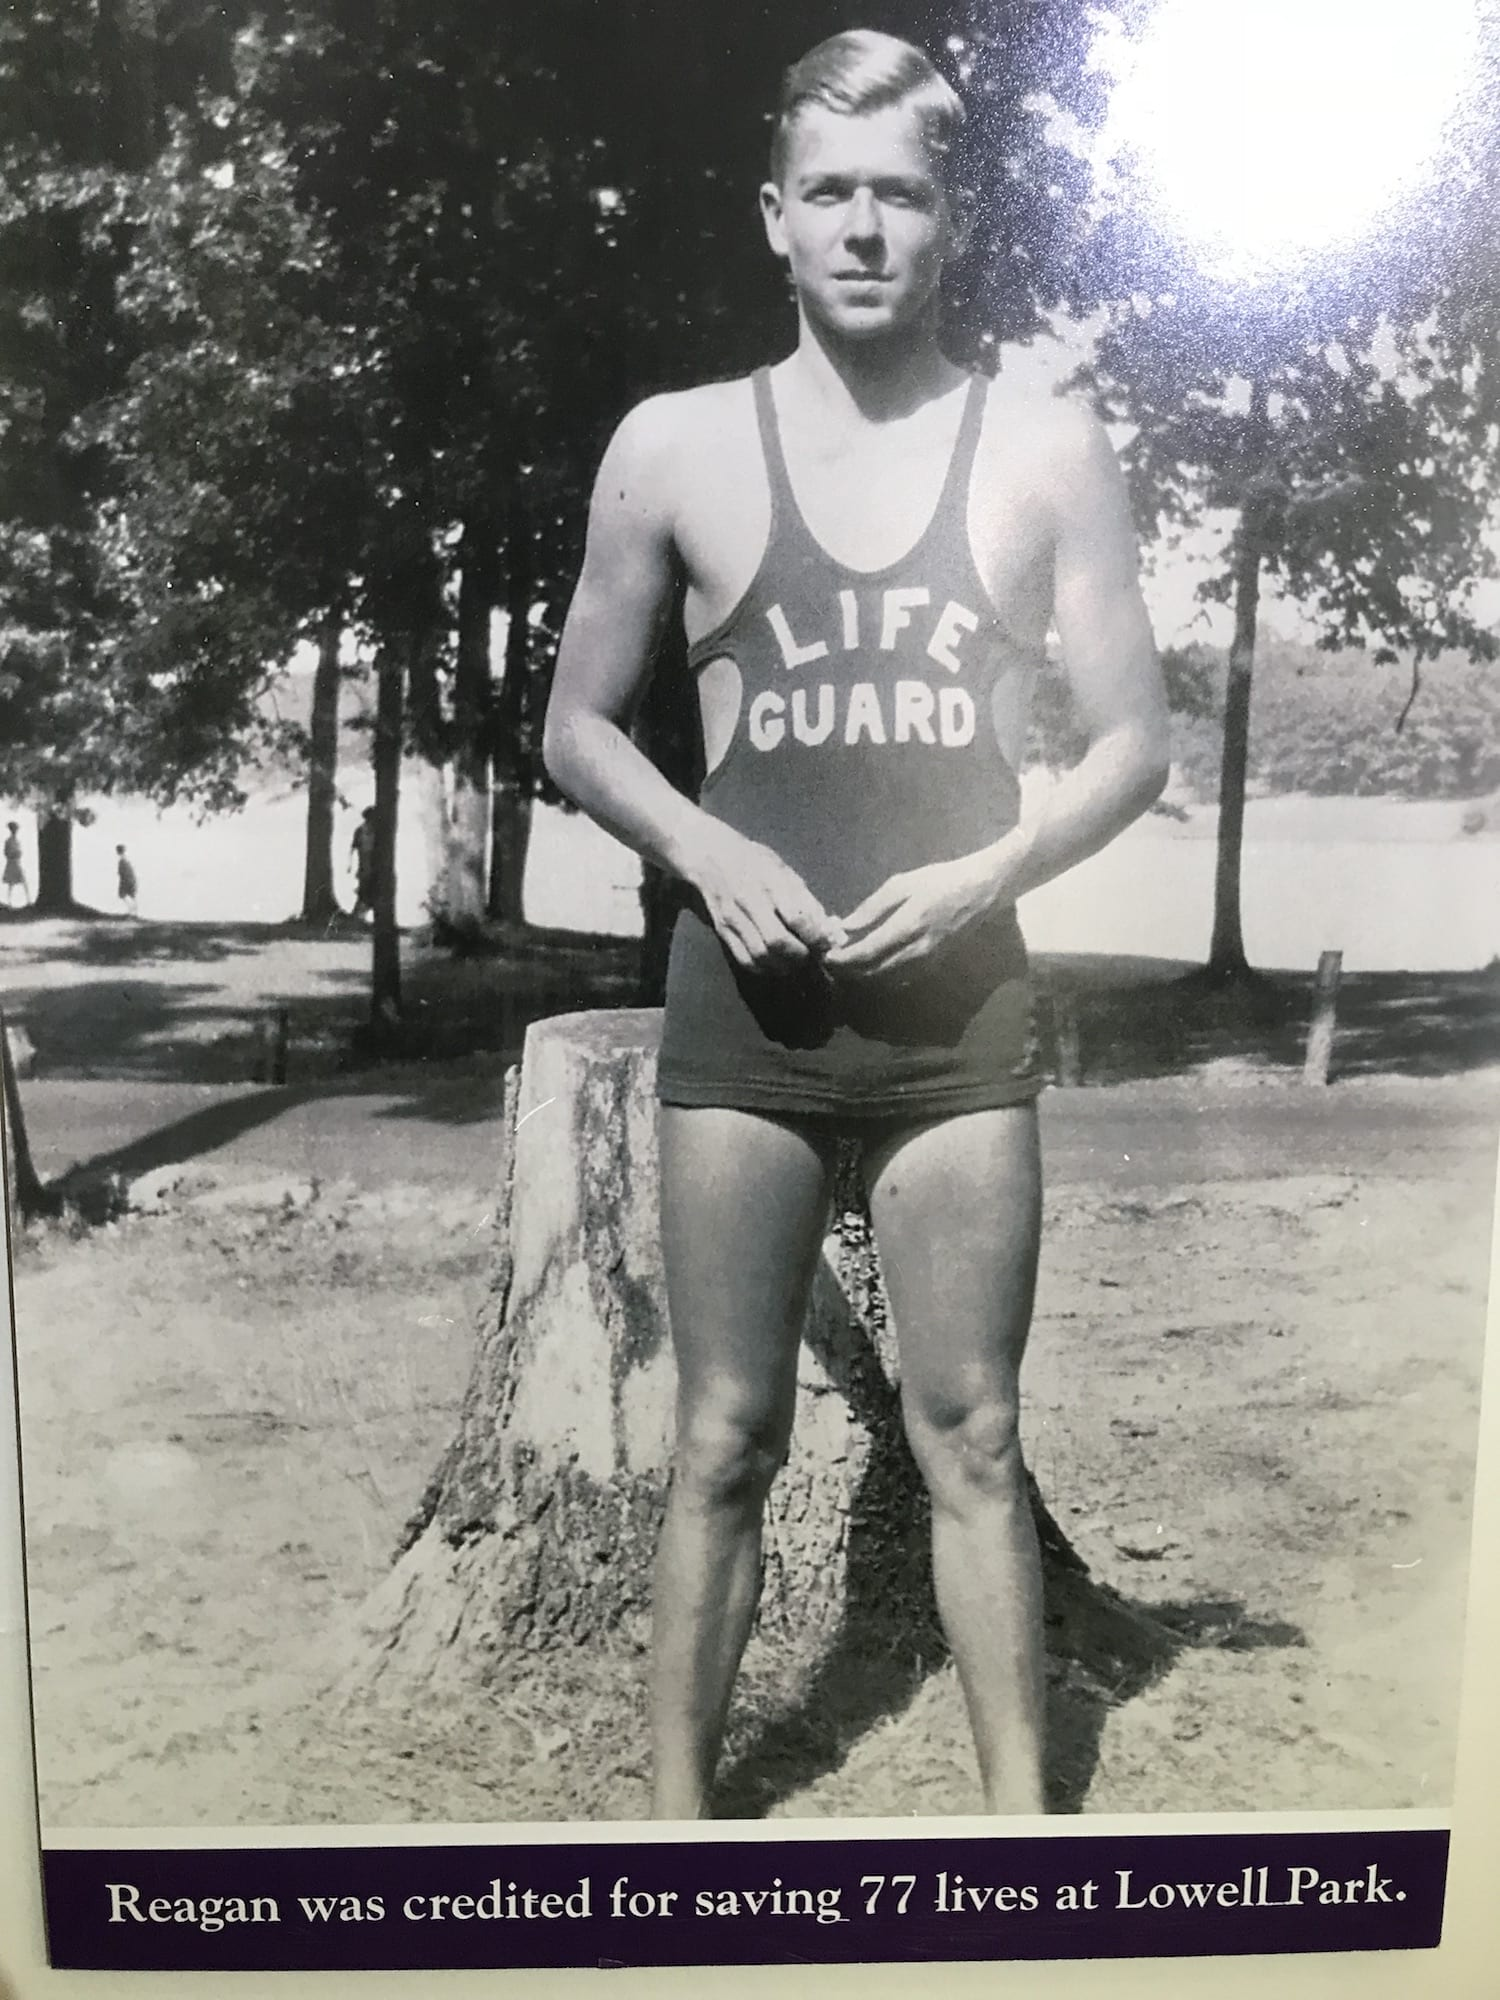 Ronald Reagan Lifeguard picture from Dixon, Illinois